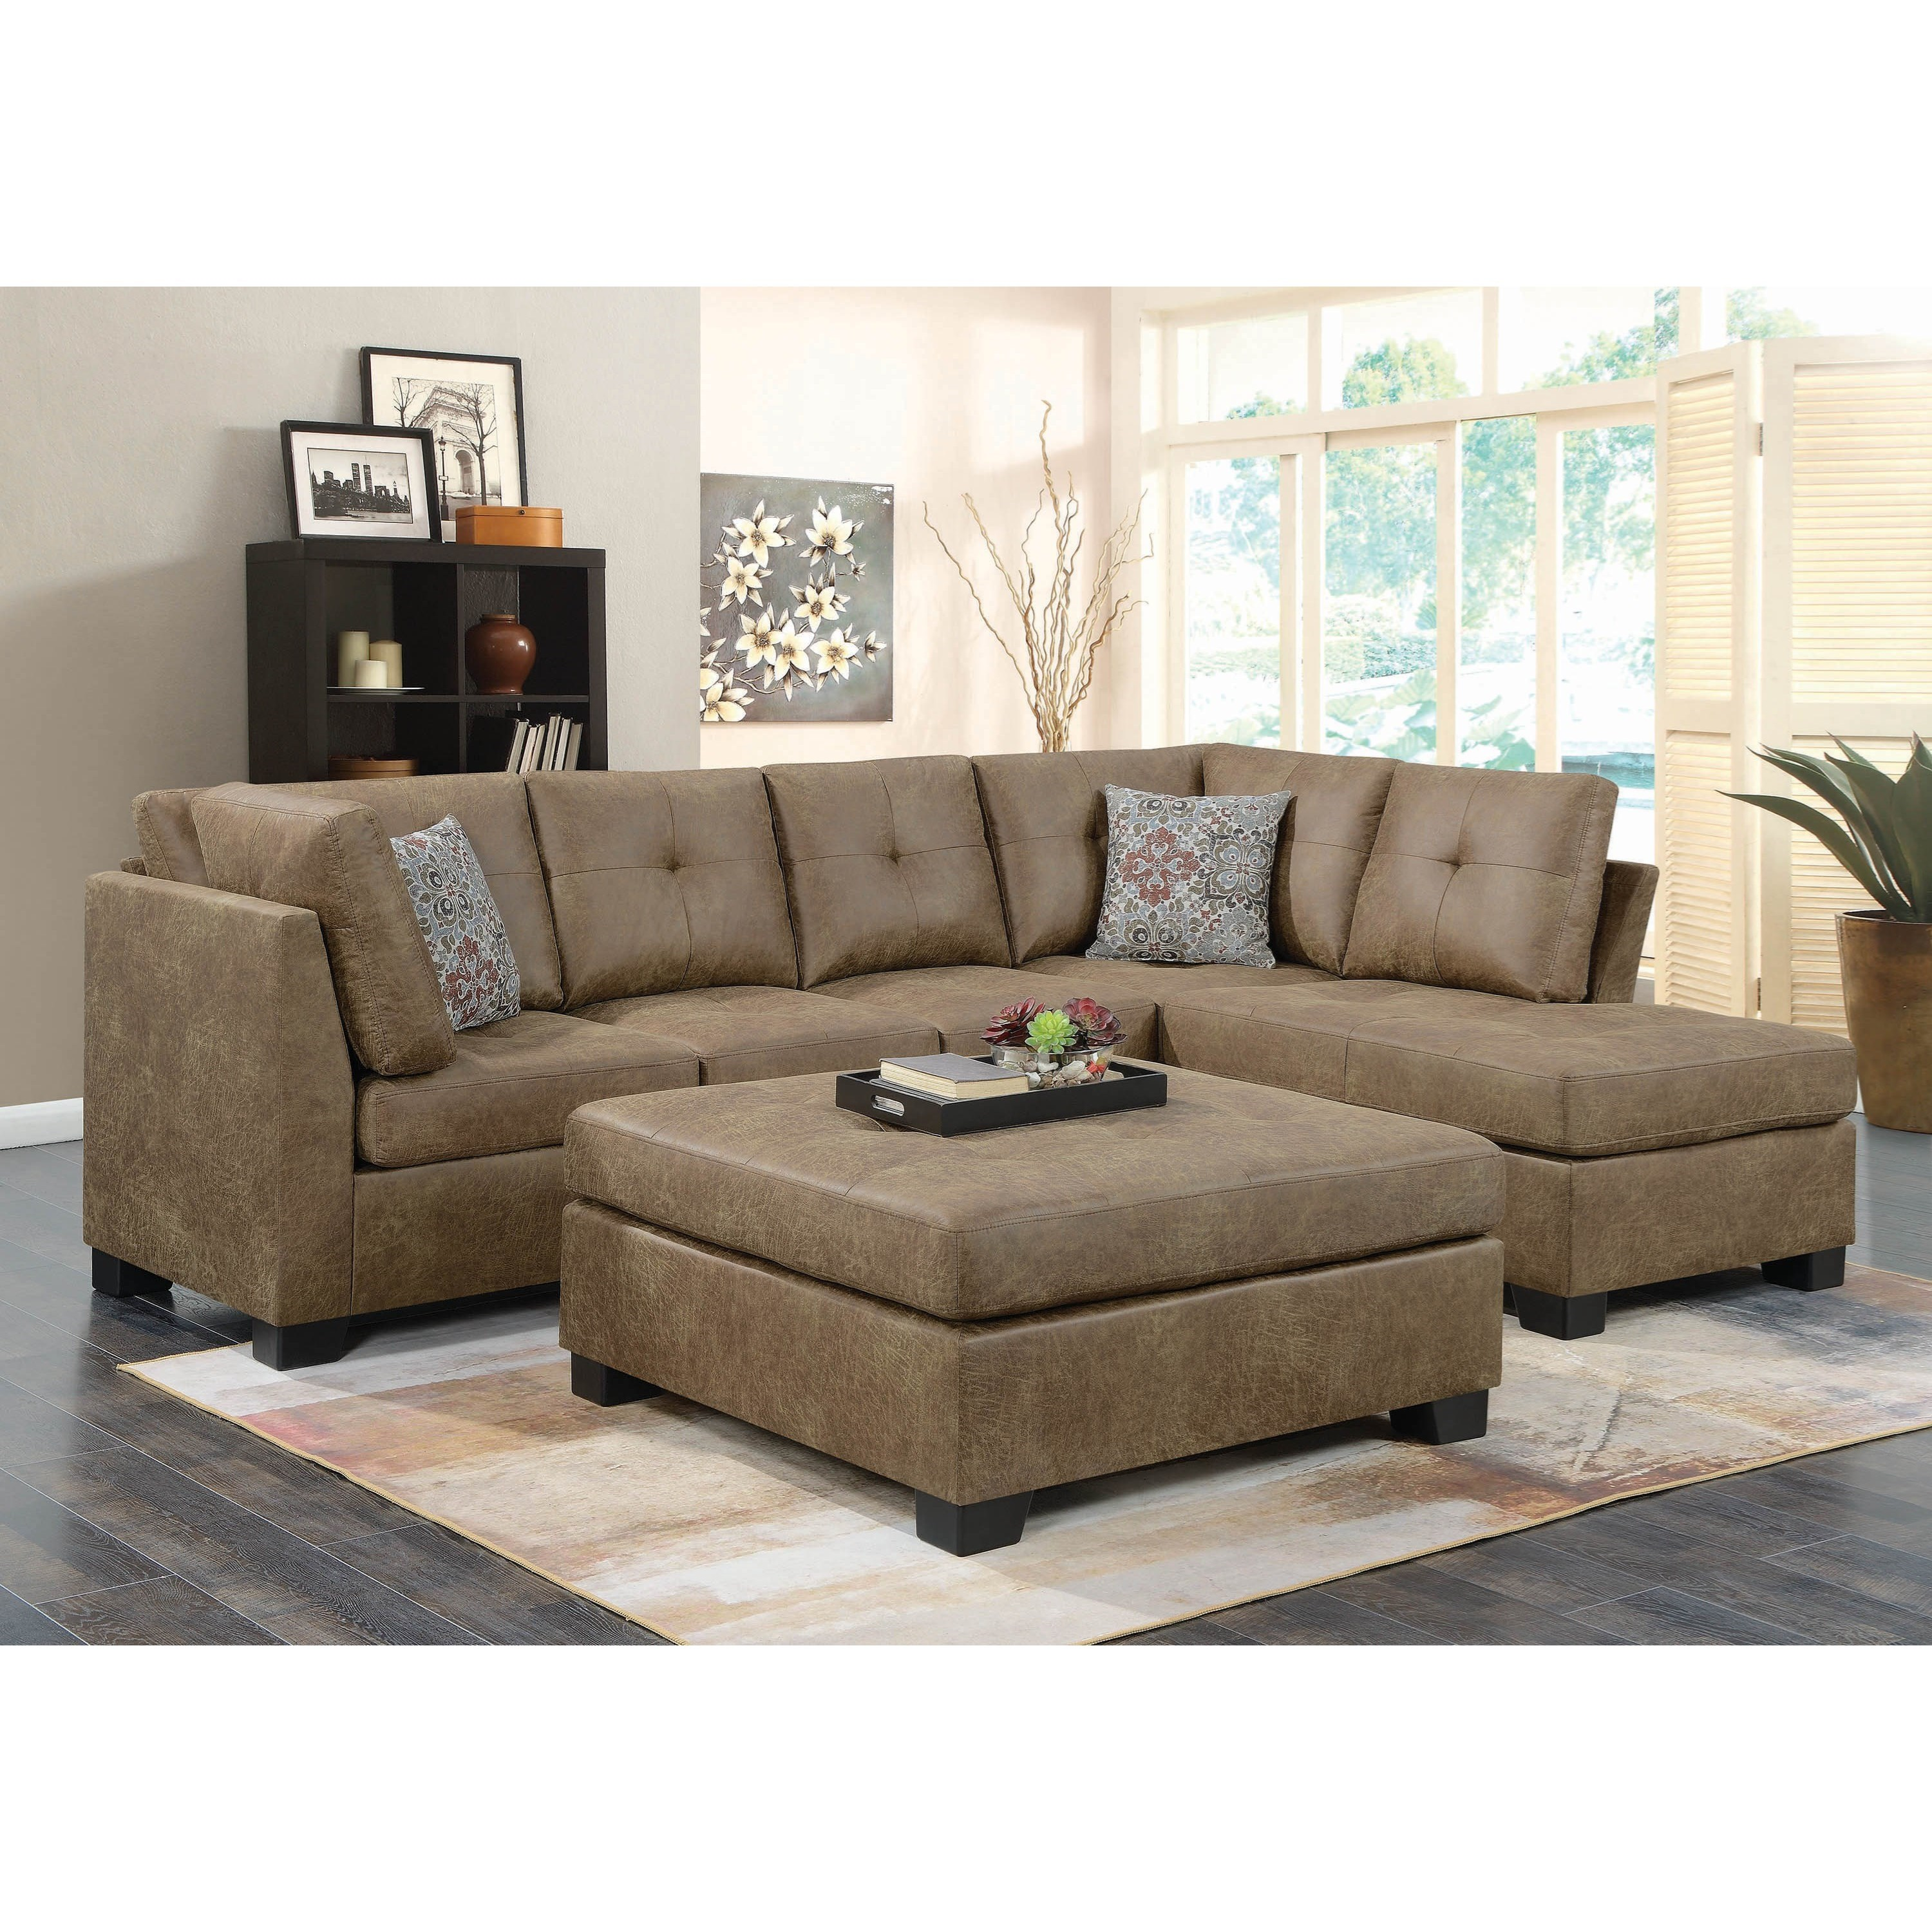 Living Room Furniture Nj: Coaster Darie Light Rustic Brown Microfiber Sectional With